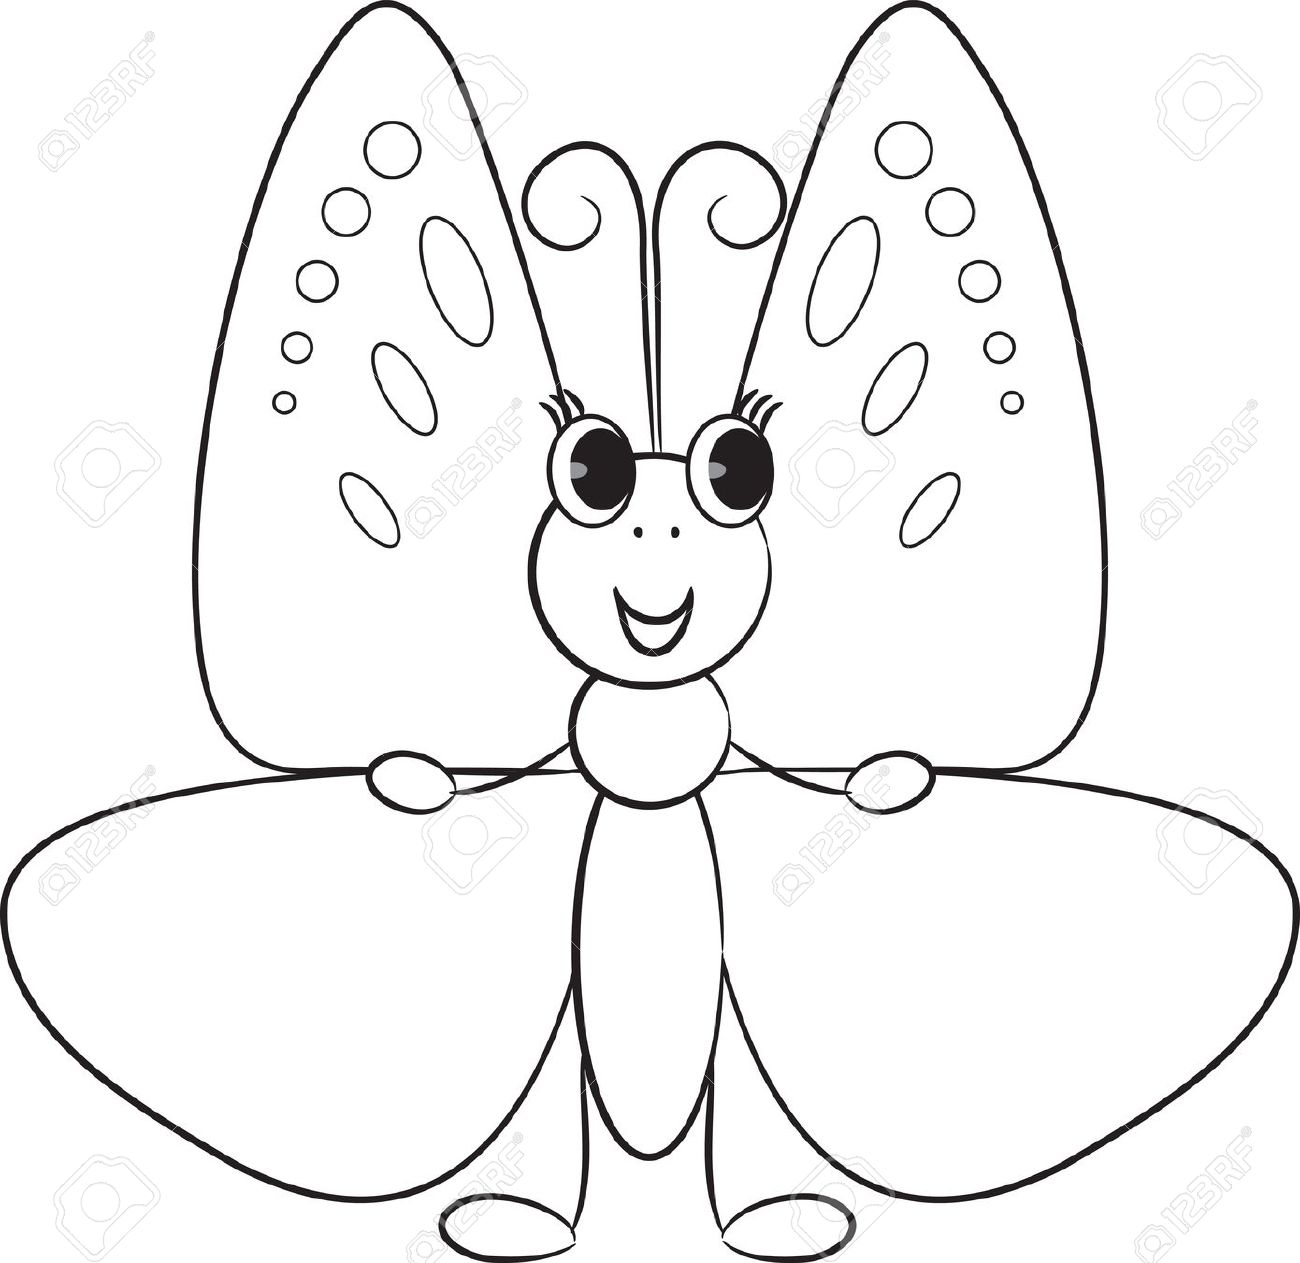 Cartoon Butterfly Clipart Black And White